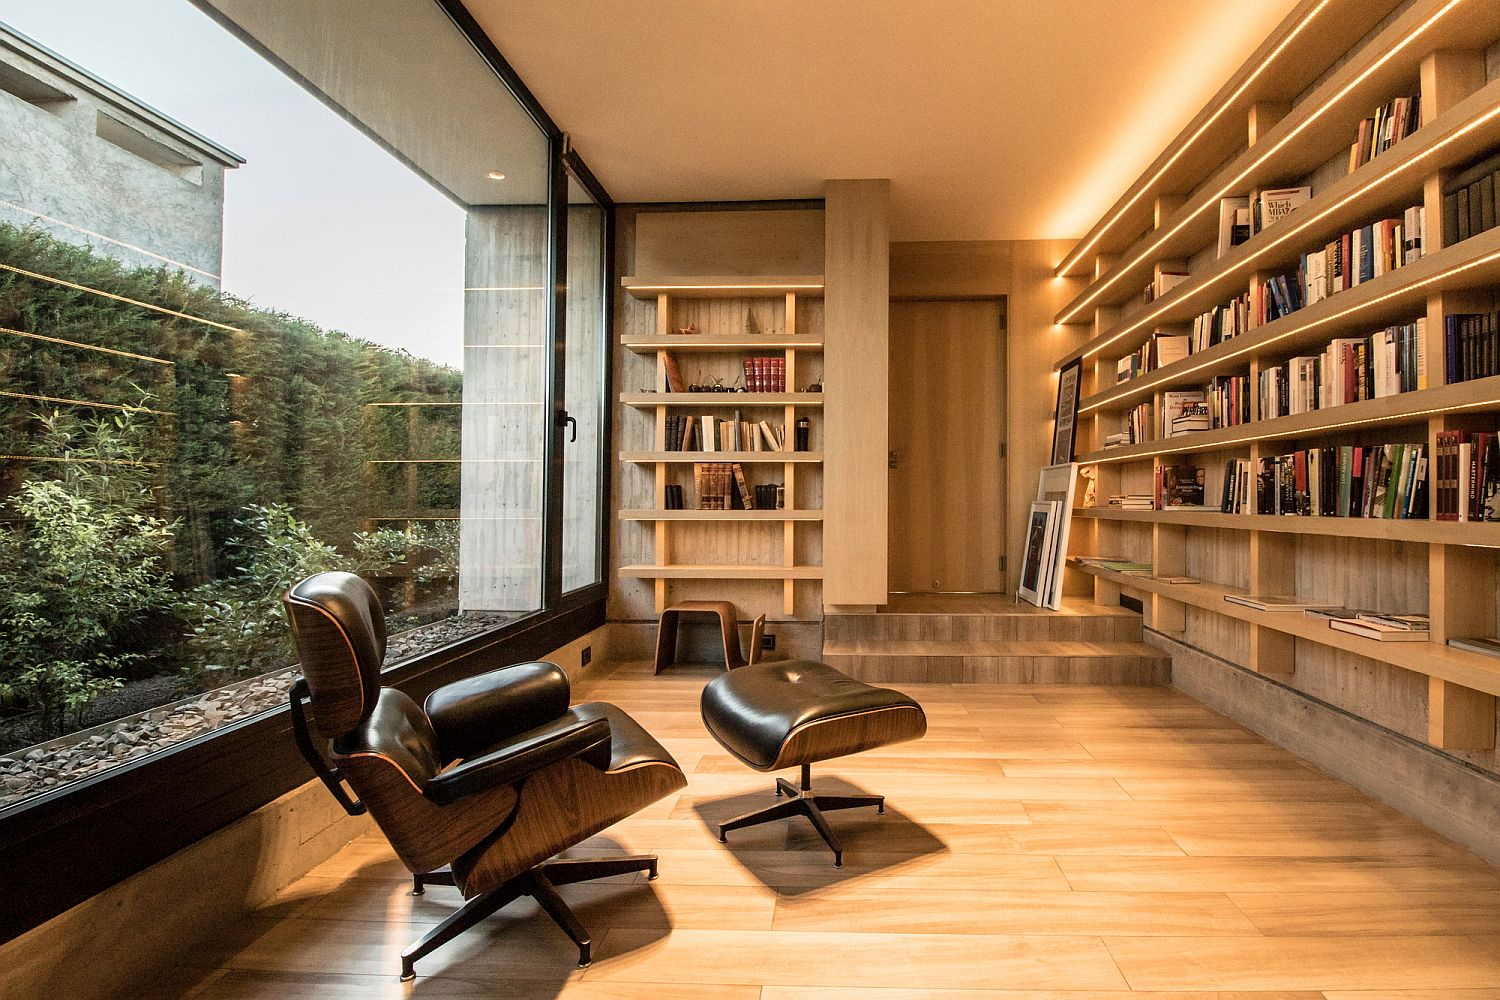 Reading room of the house with comfy Eames Lounger and woodsy interior